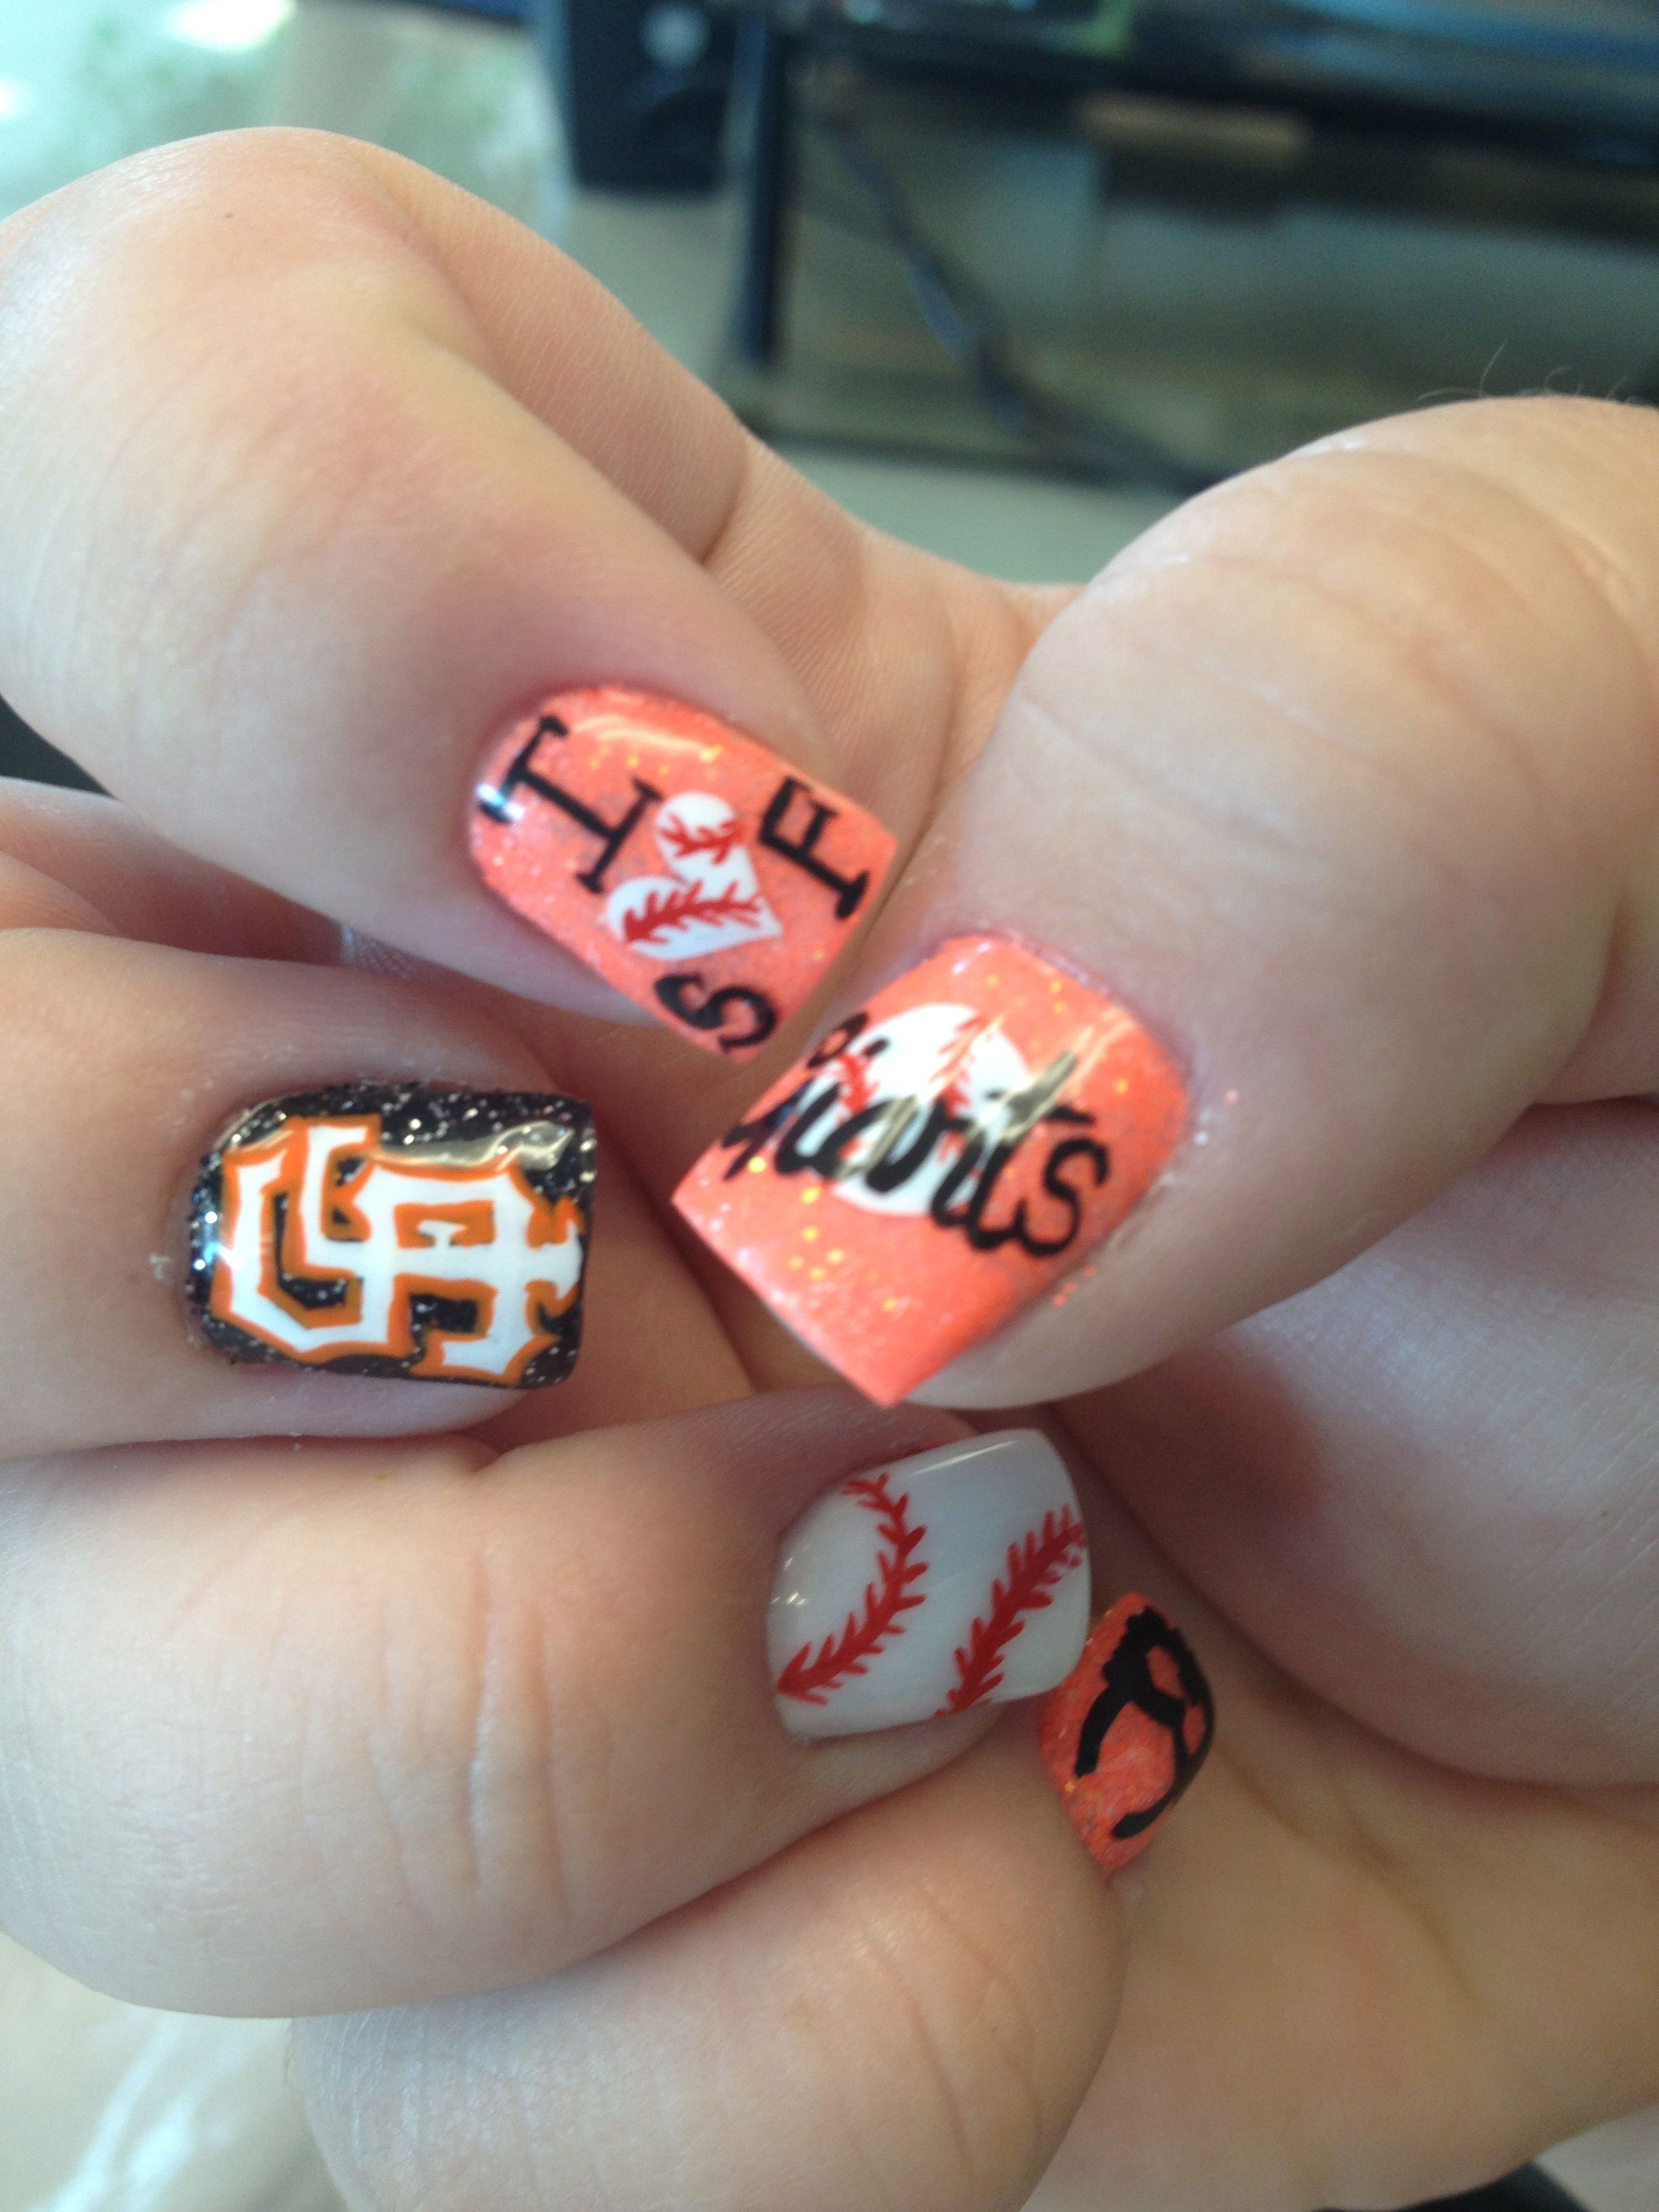 SF Giants. Nails by Jamie | My Nails :) | Pinterest | Sf giants ...